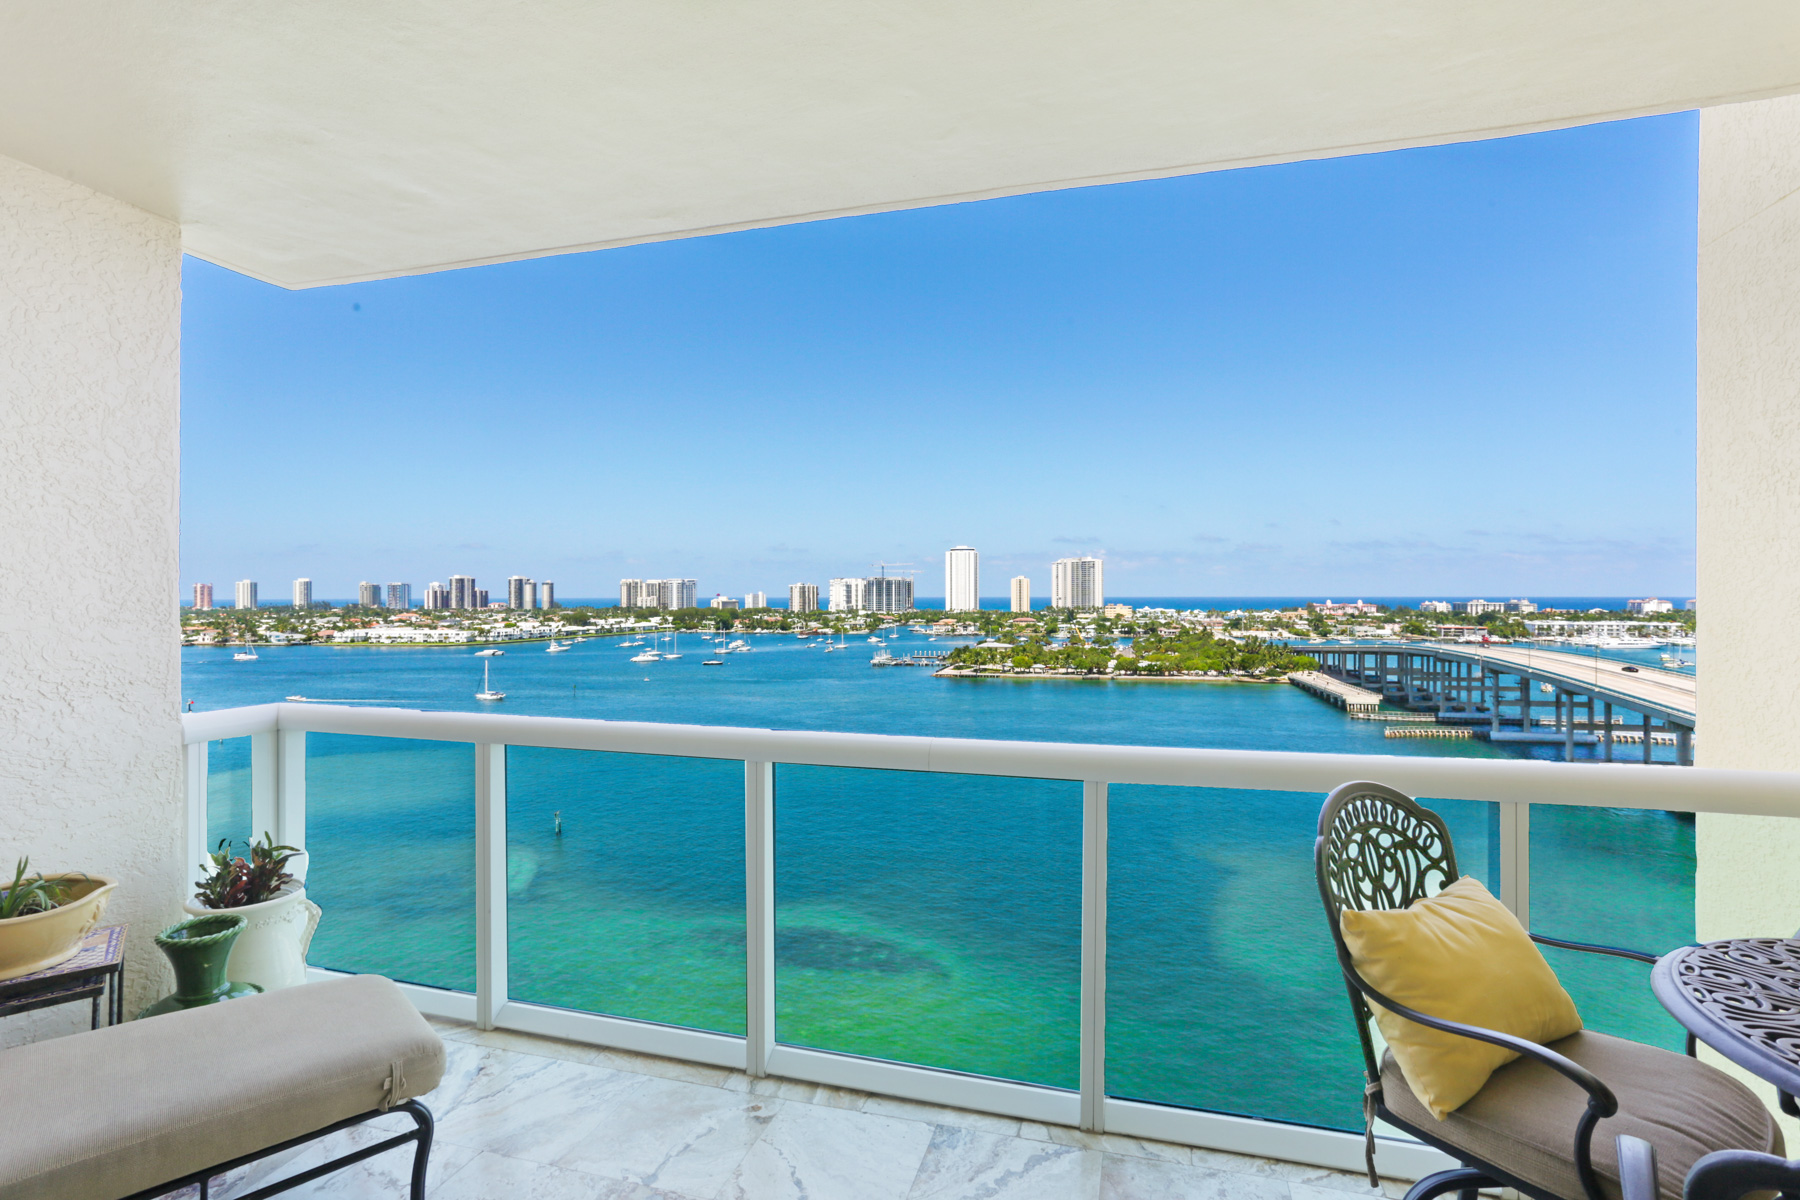 2640 Lake Shore Dr #1412, Riviera Beach FL 33404 Top Riviera Beach Agents Sold And Found The Buyer In Marina Grande